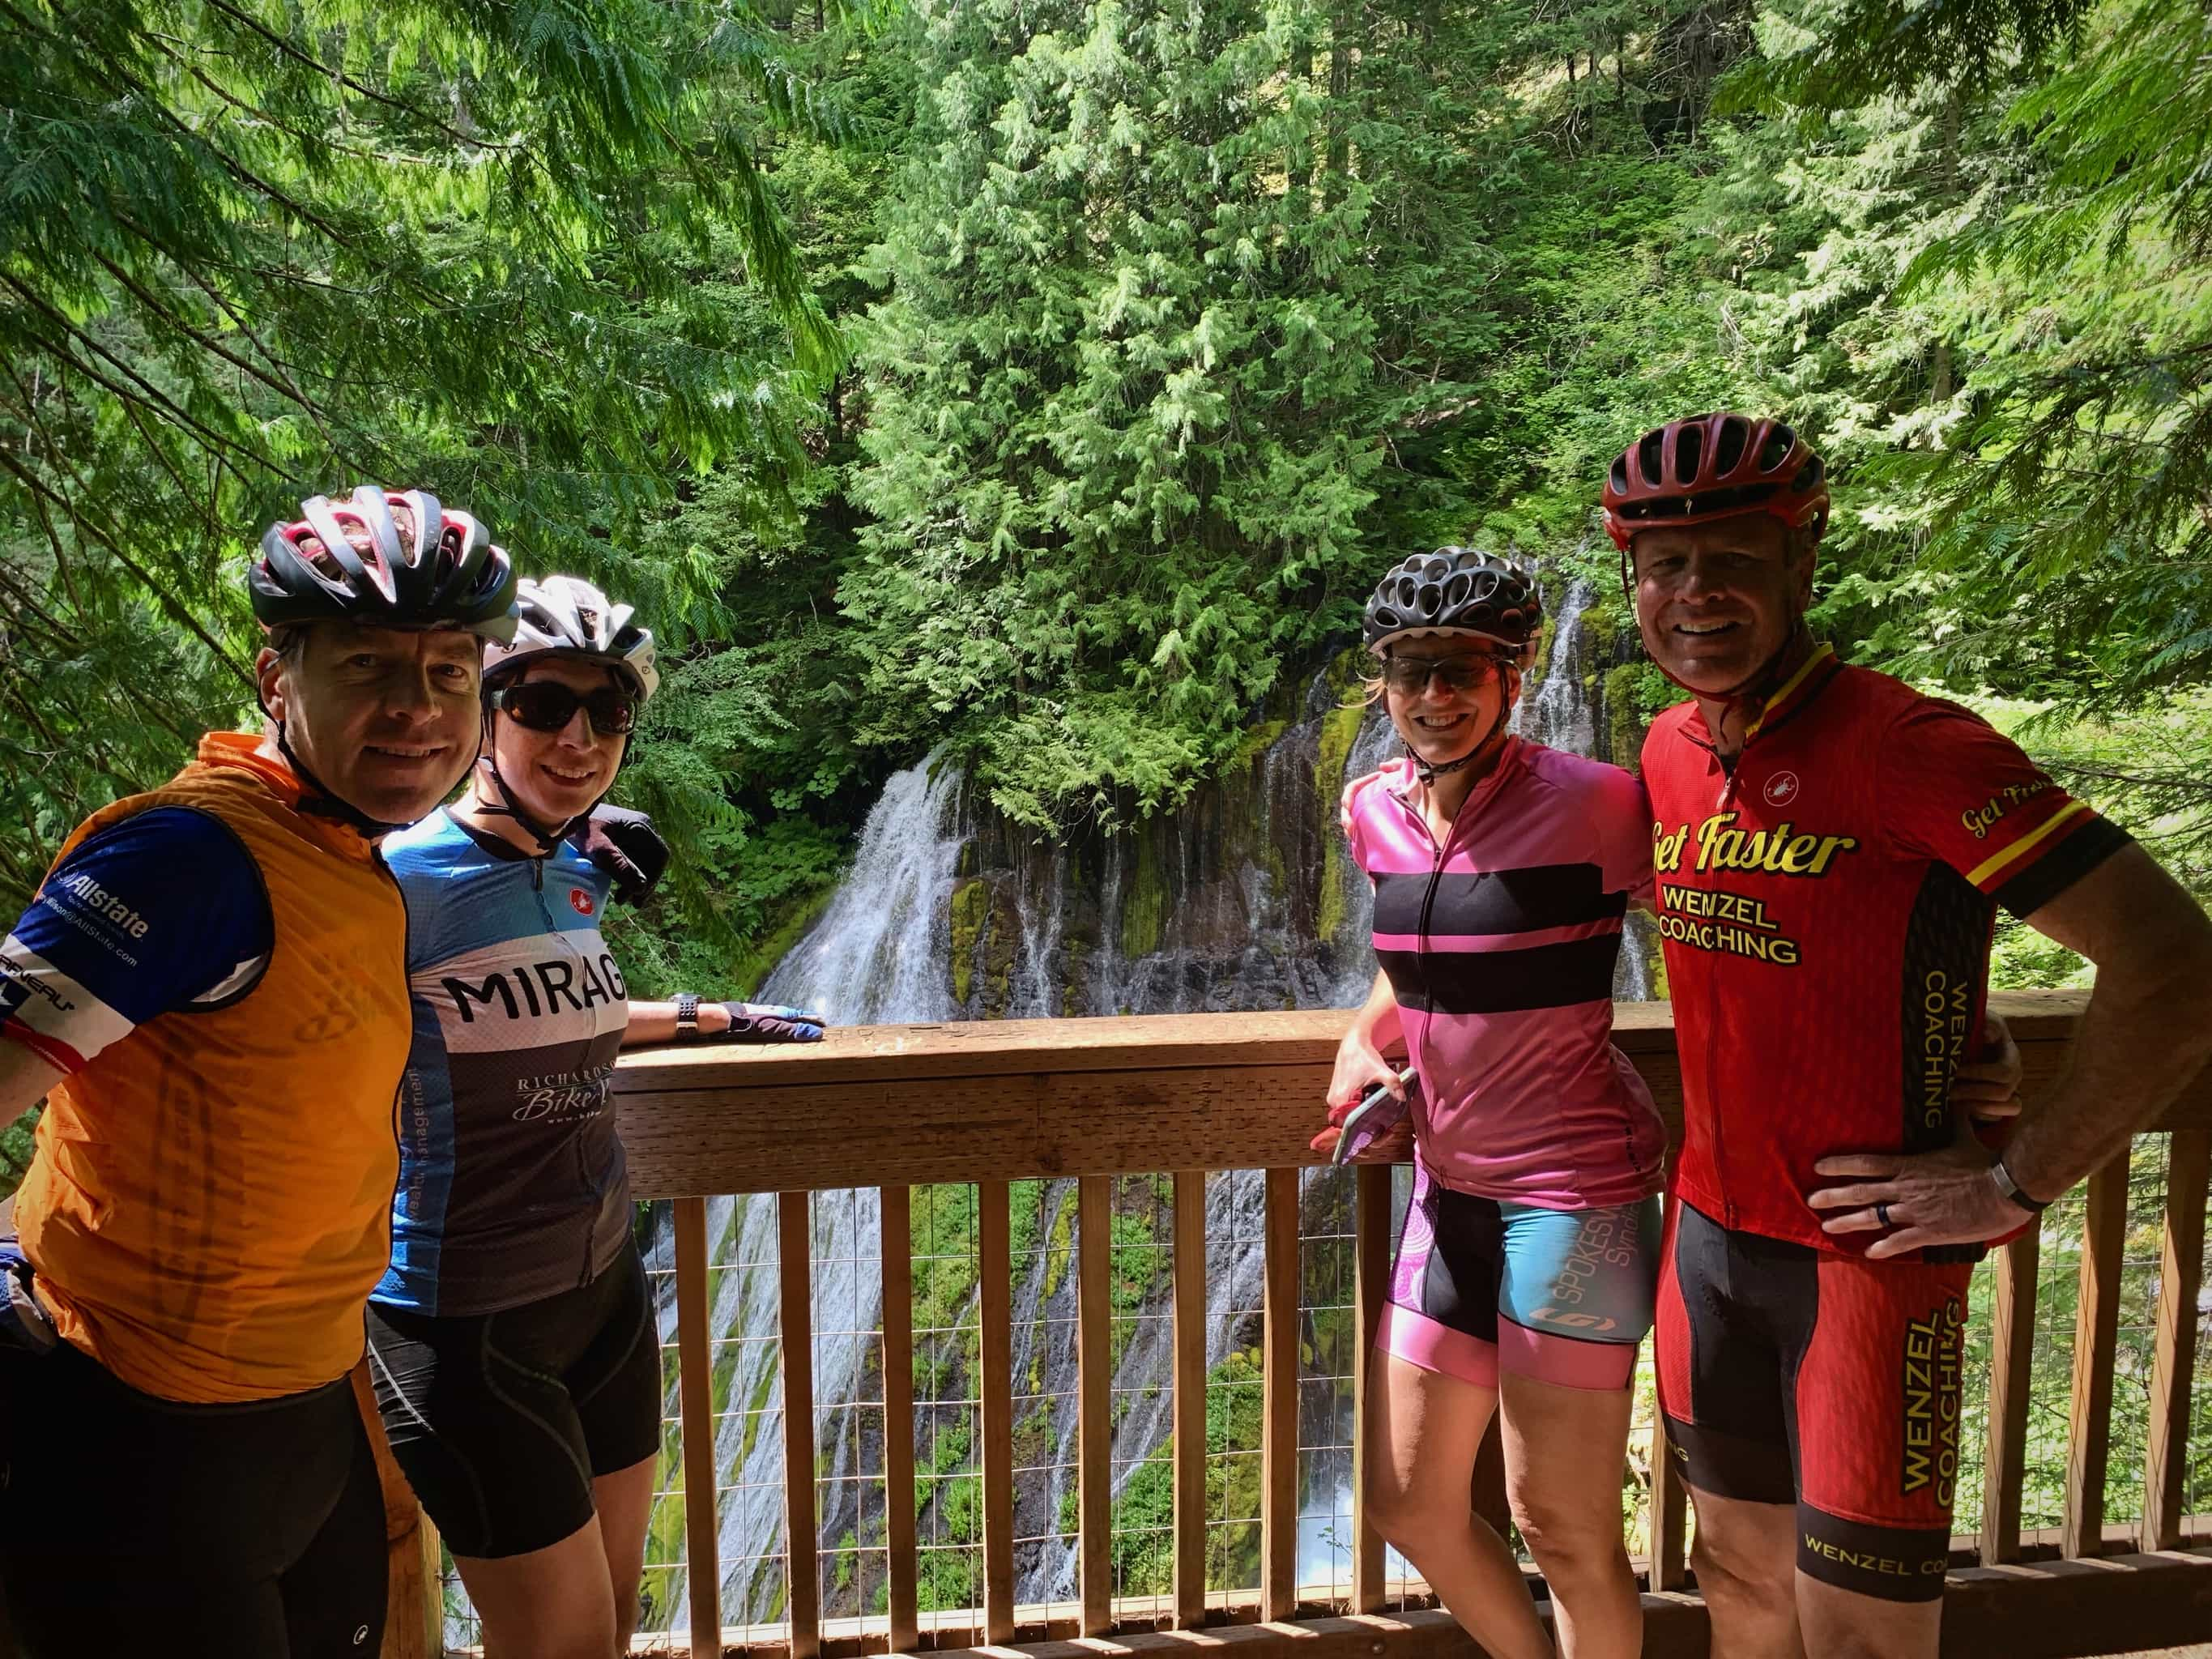 Cyclists taking in the views at Panther Creek Falls in Gifford Pinchot National forest.